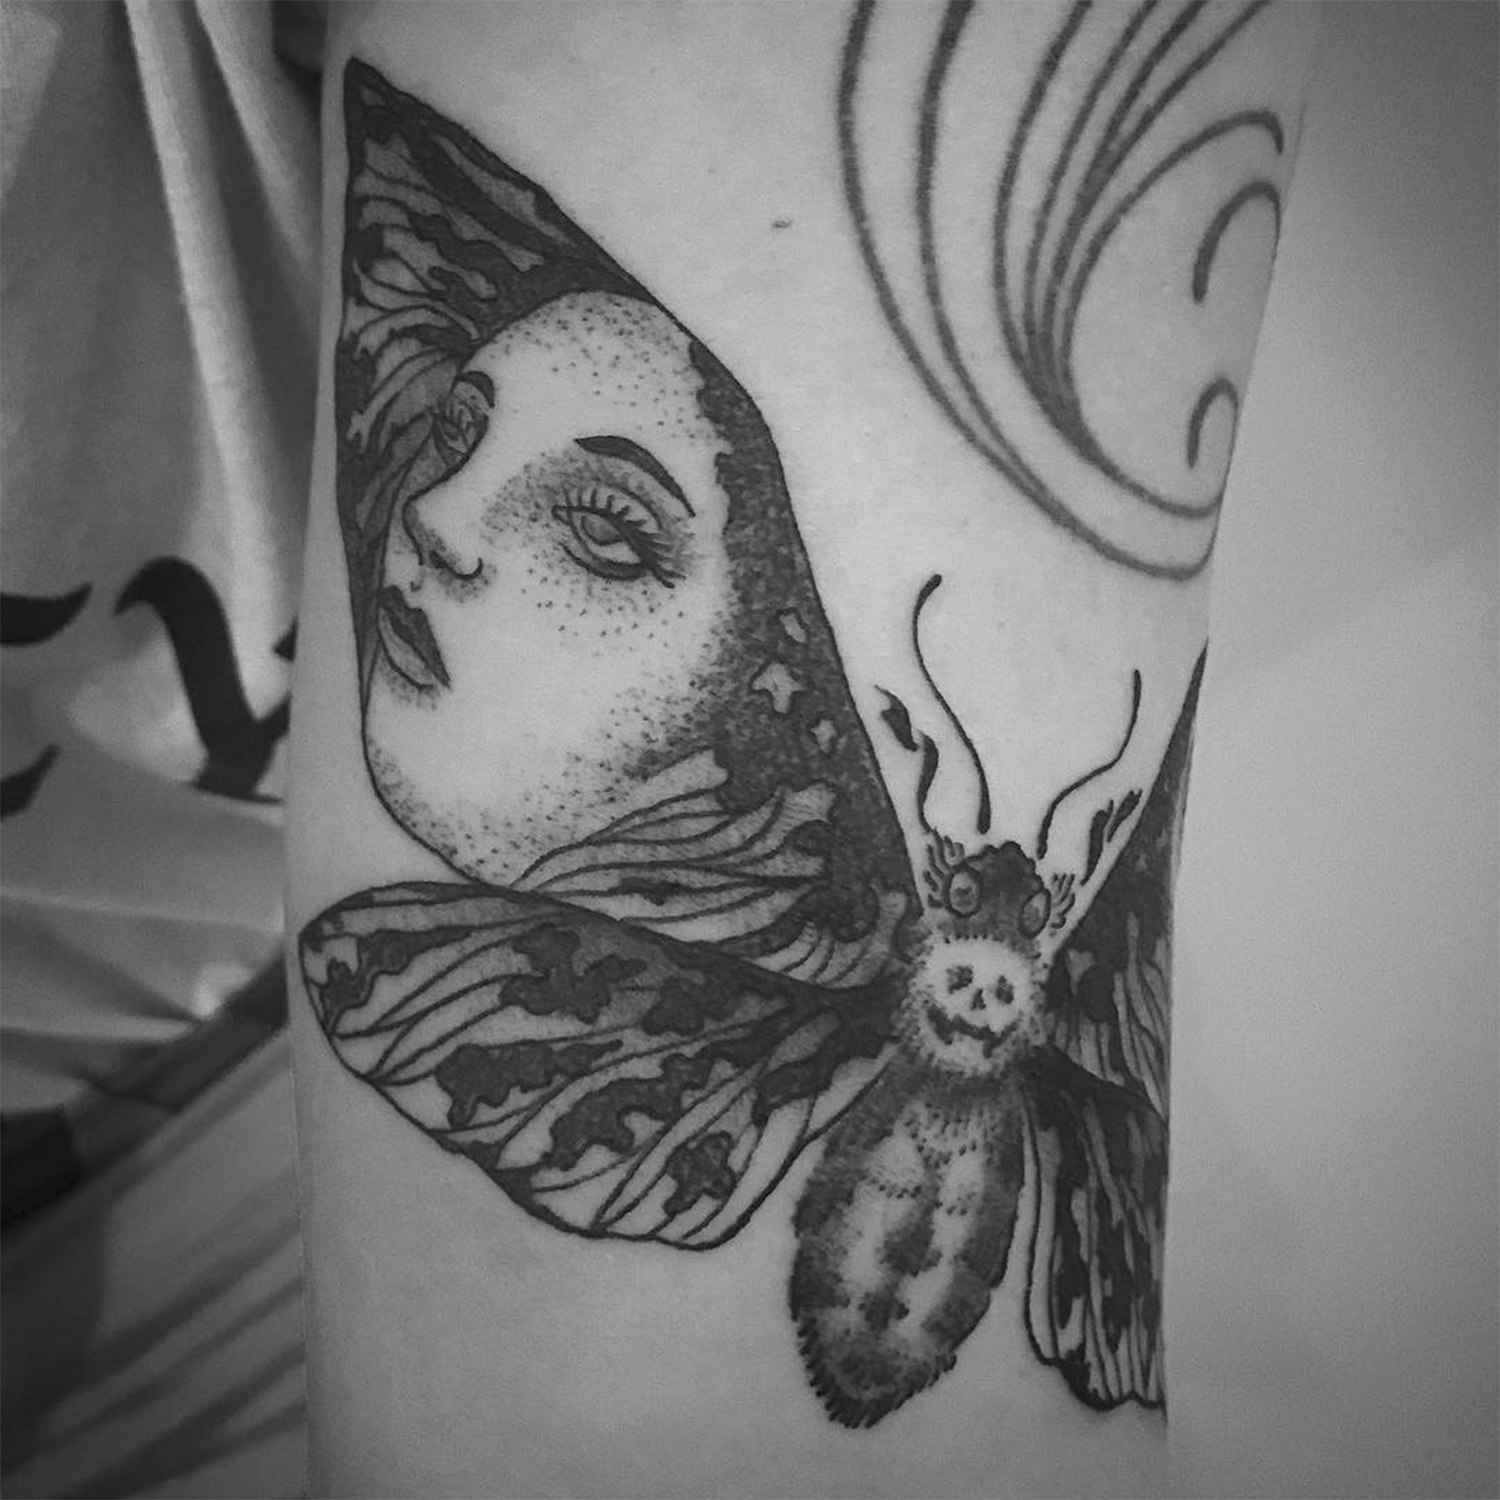 vintage style tattoo, moth and girl, by Marcus Filiputti